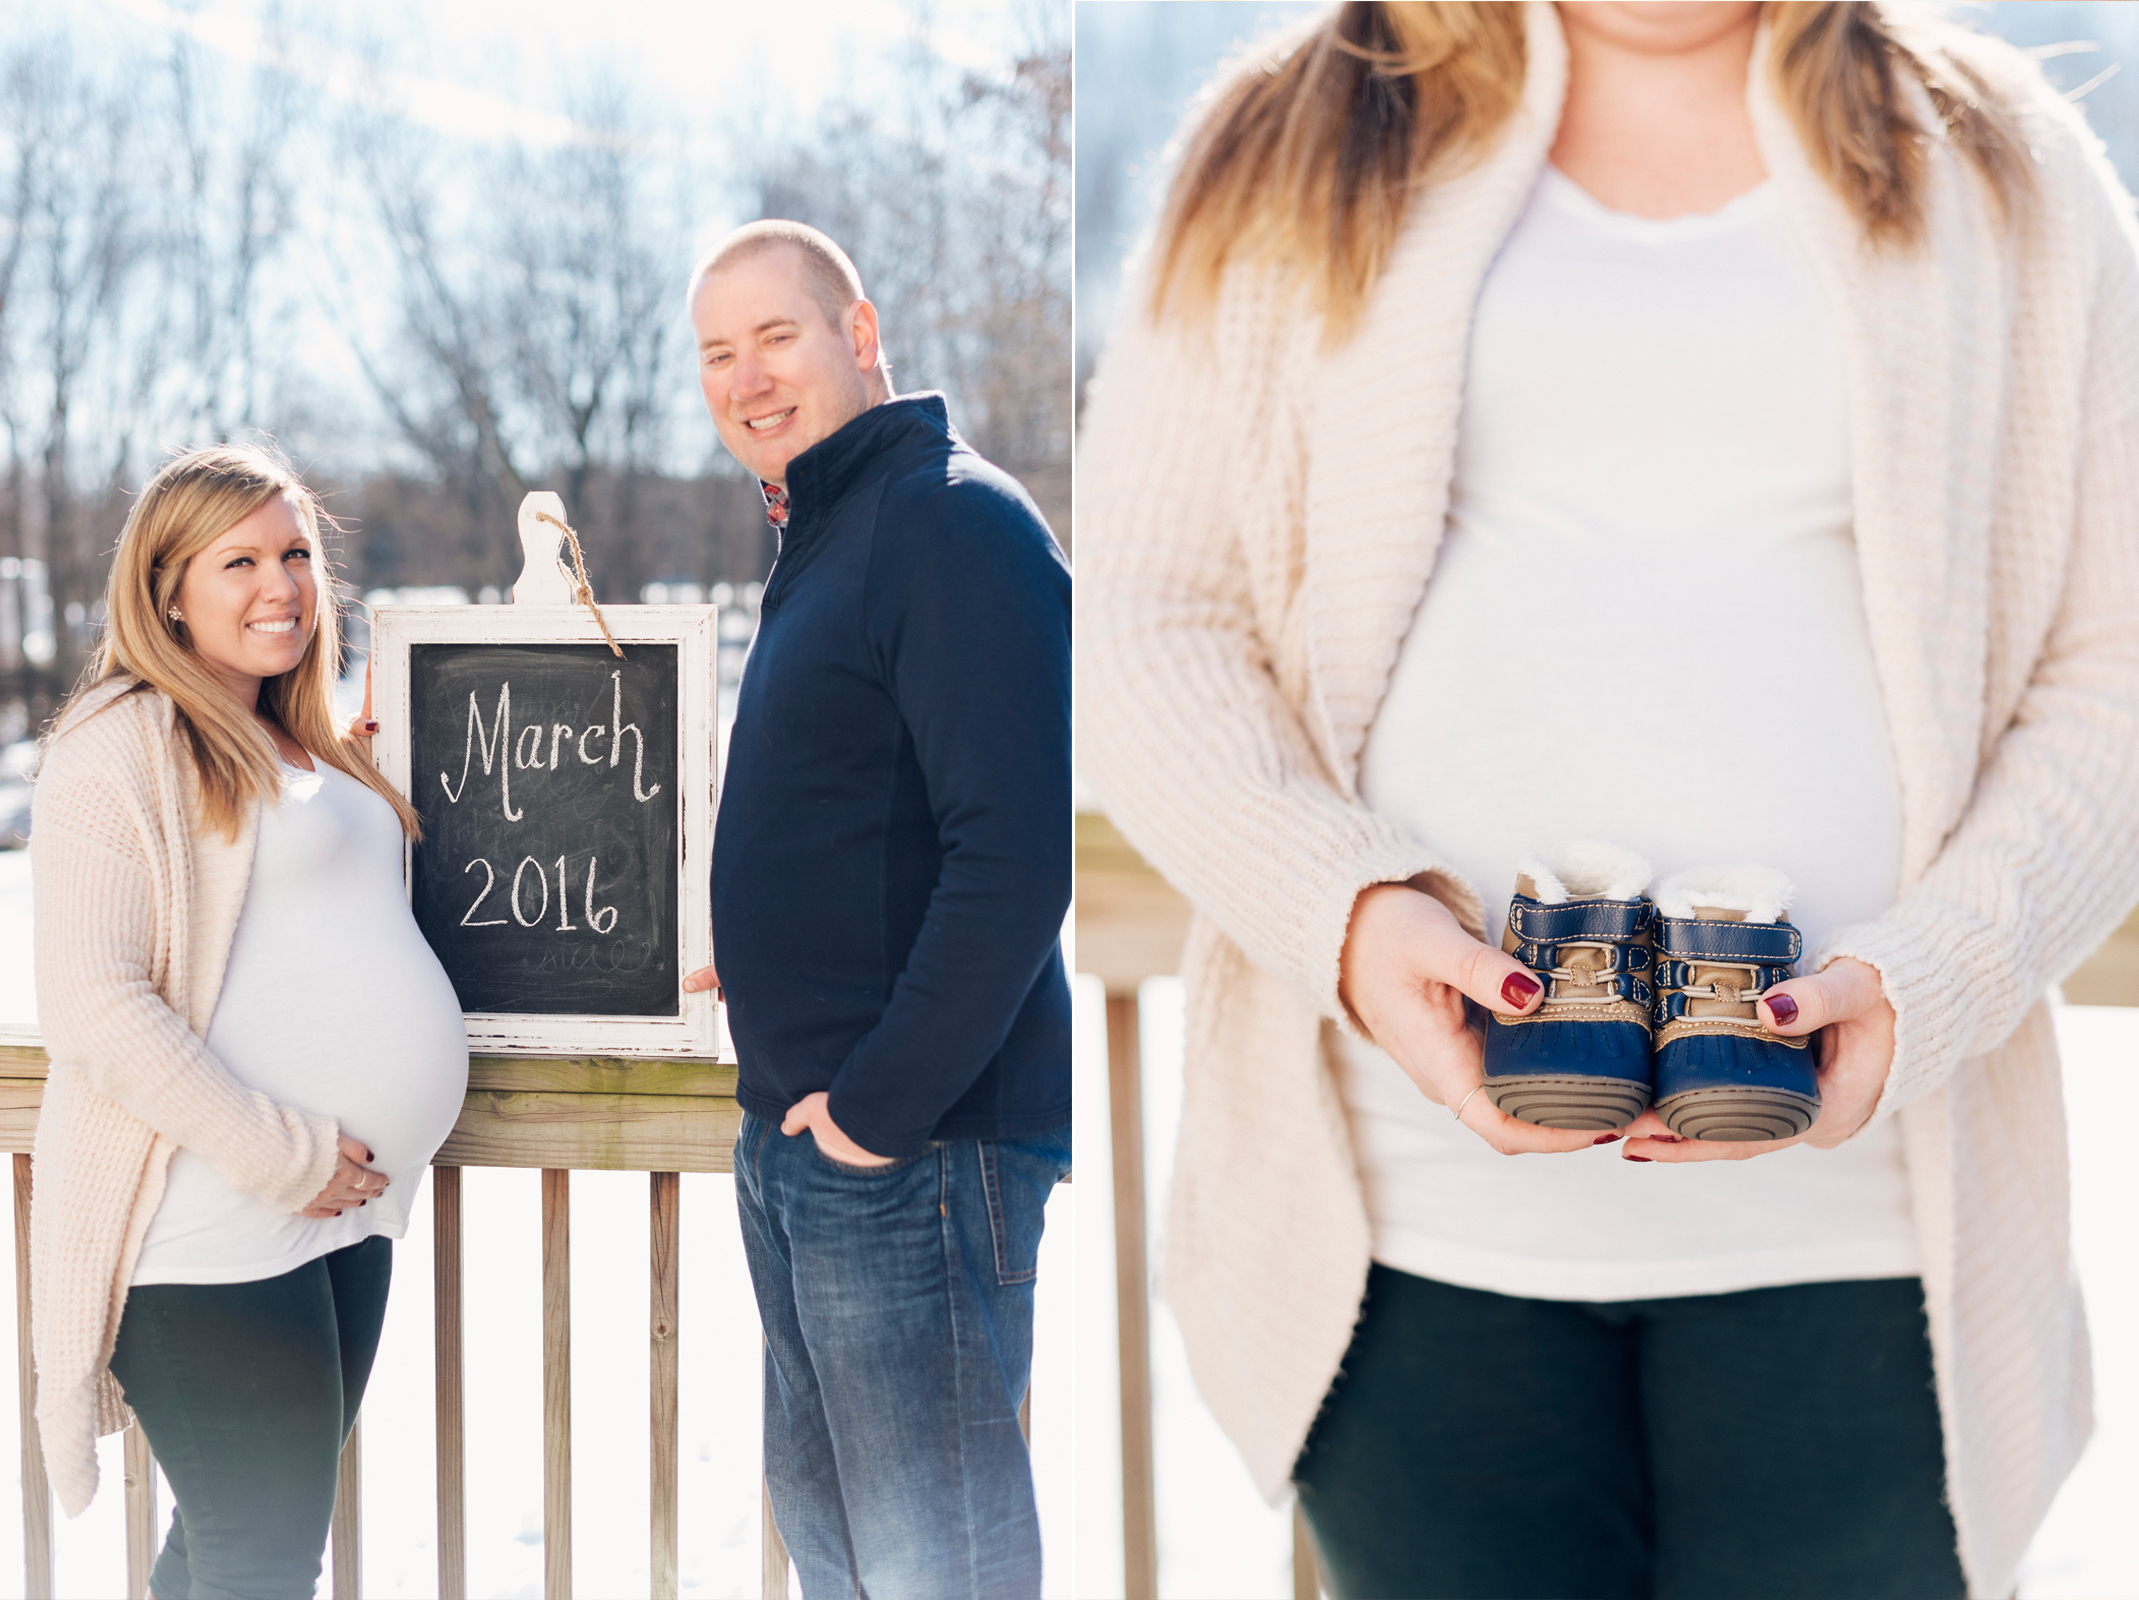 Shunkwiler Photo | Maryland Maternity Photography